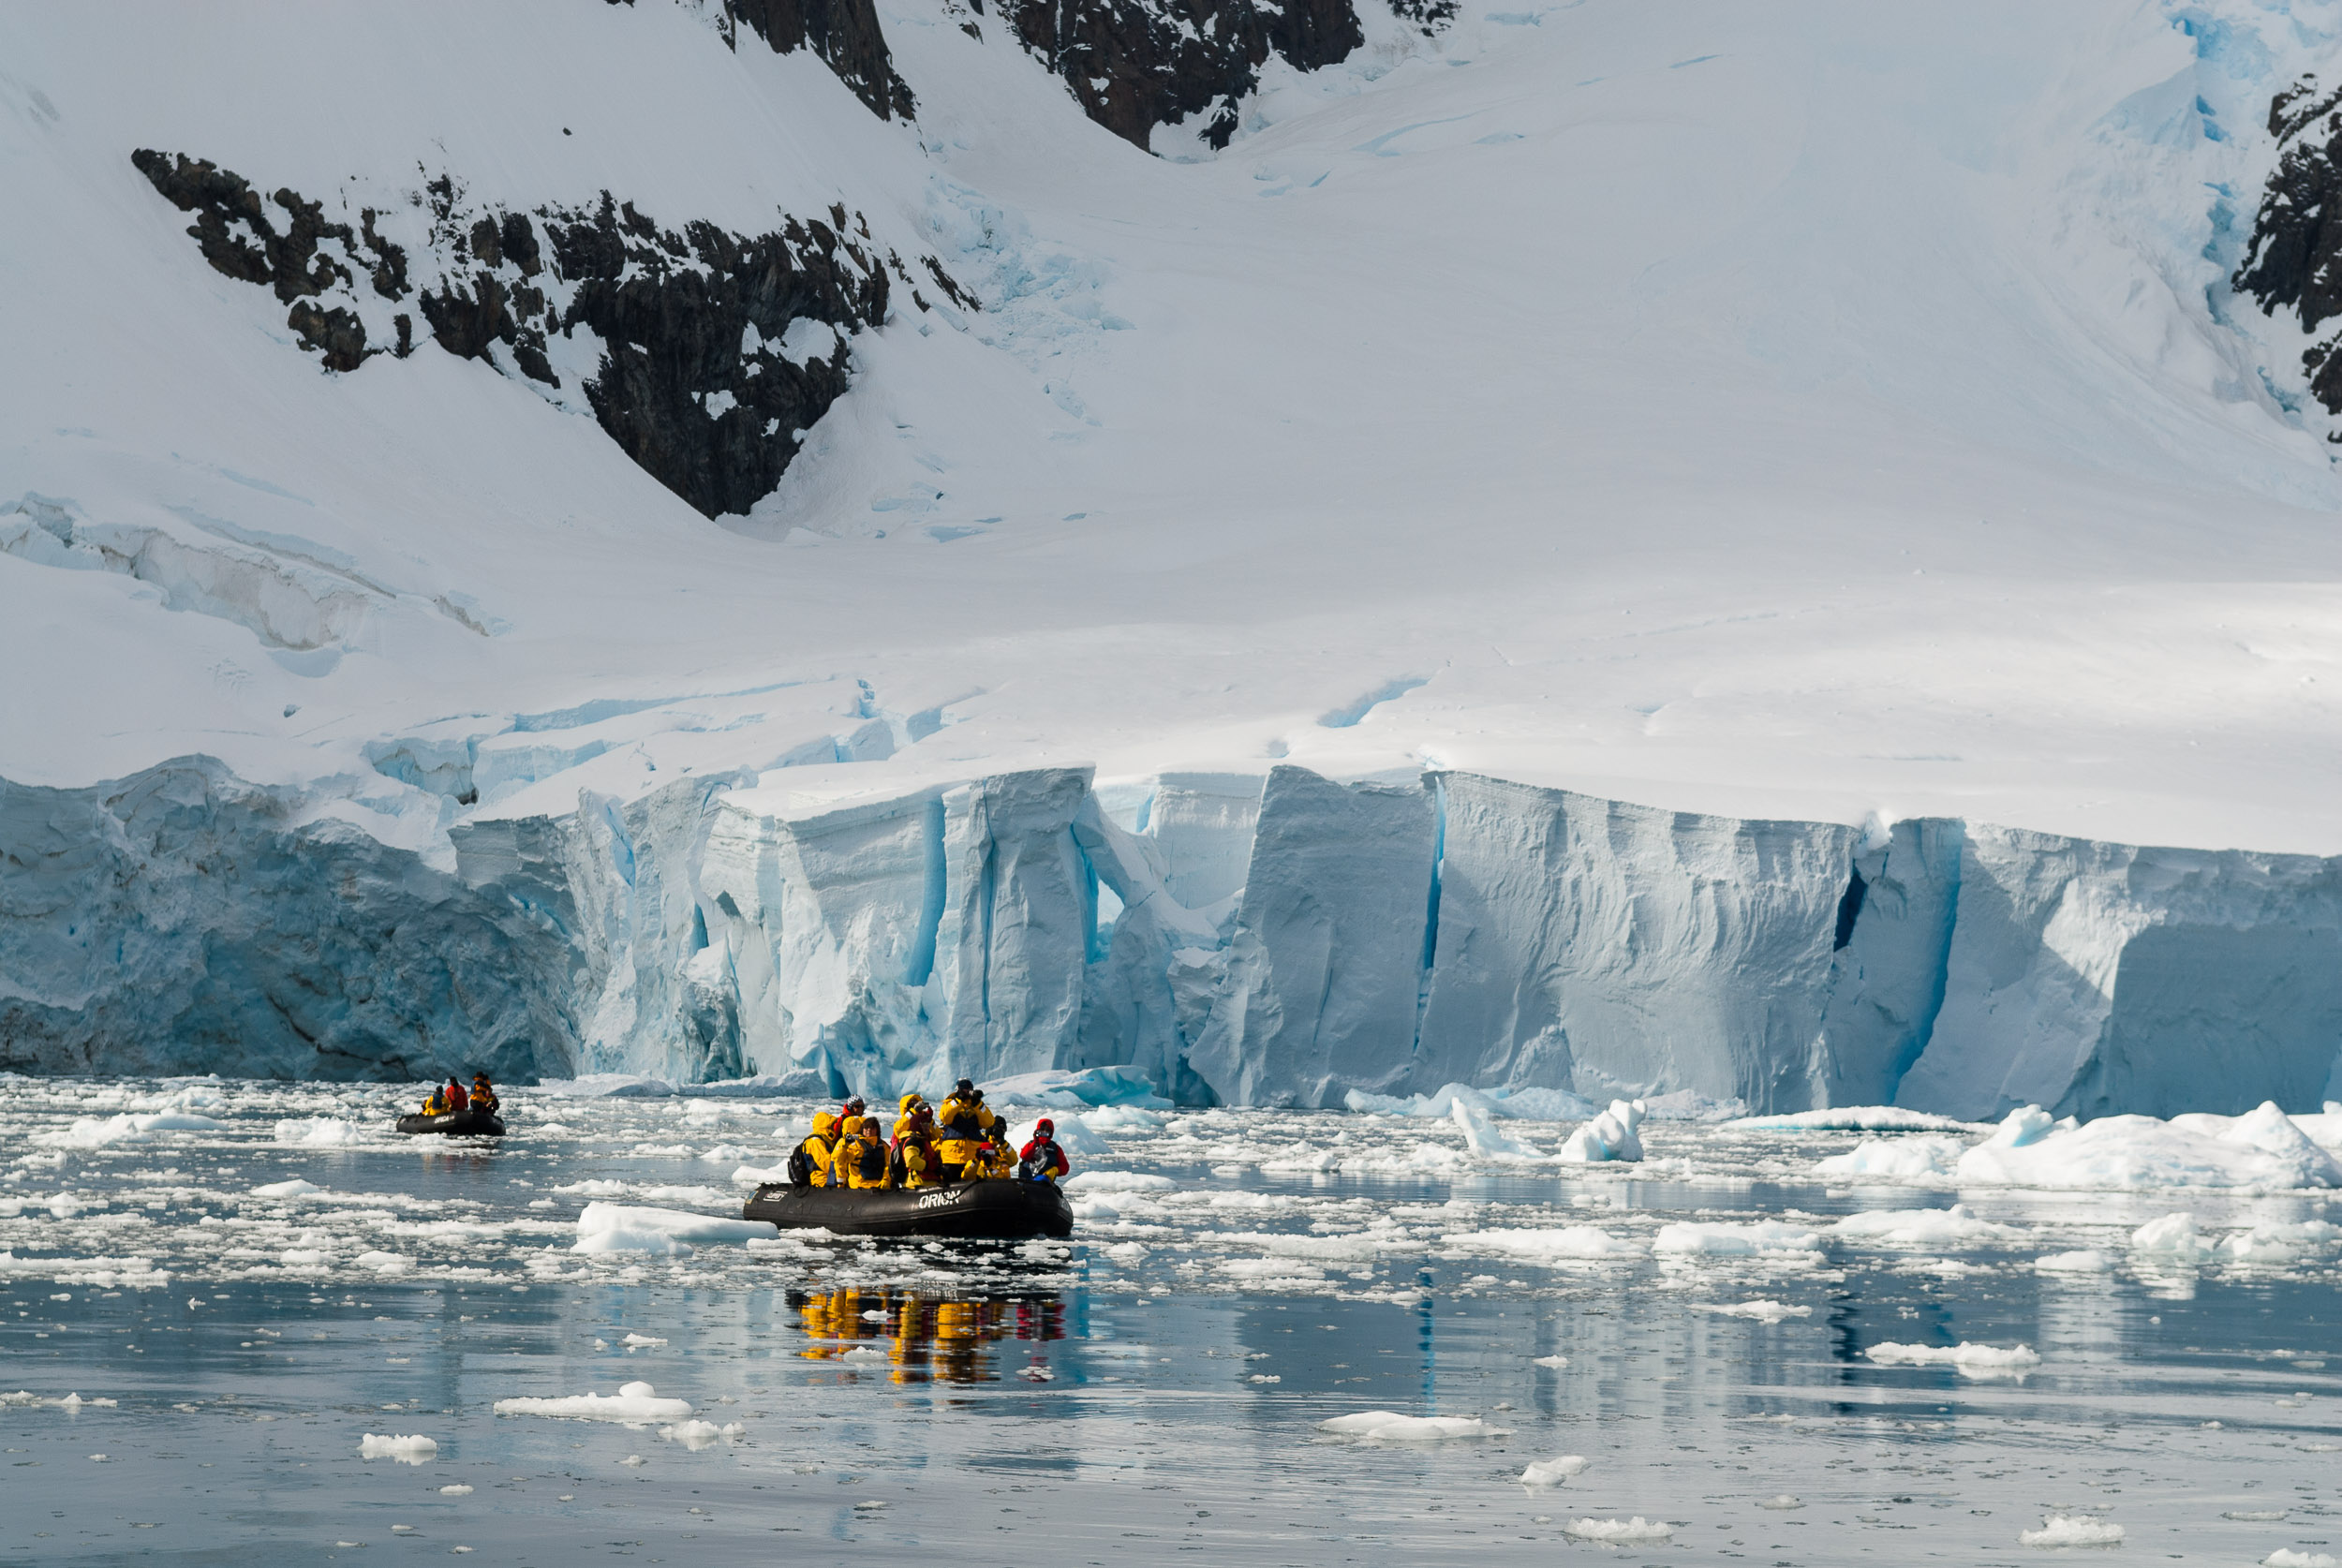 Tourists cruising through pack ice on motorised inflatable rafts known as zodiacs, Paradise Harbour, Danco Coast, Graham Land, Antarctica. Due to its picturesque landscape, with dramatic mountains and glaciers, Paradise Harbour is visited by numerous expedition cruise ships each Antarctic summer.